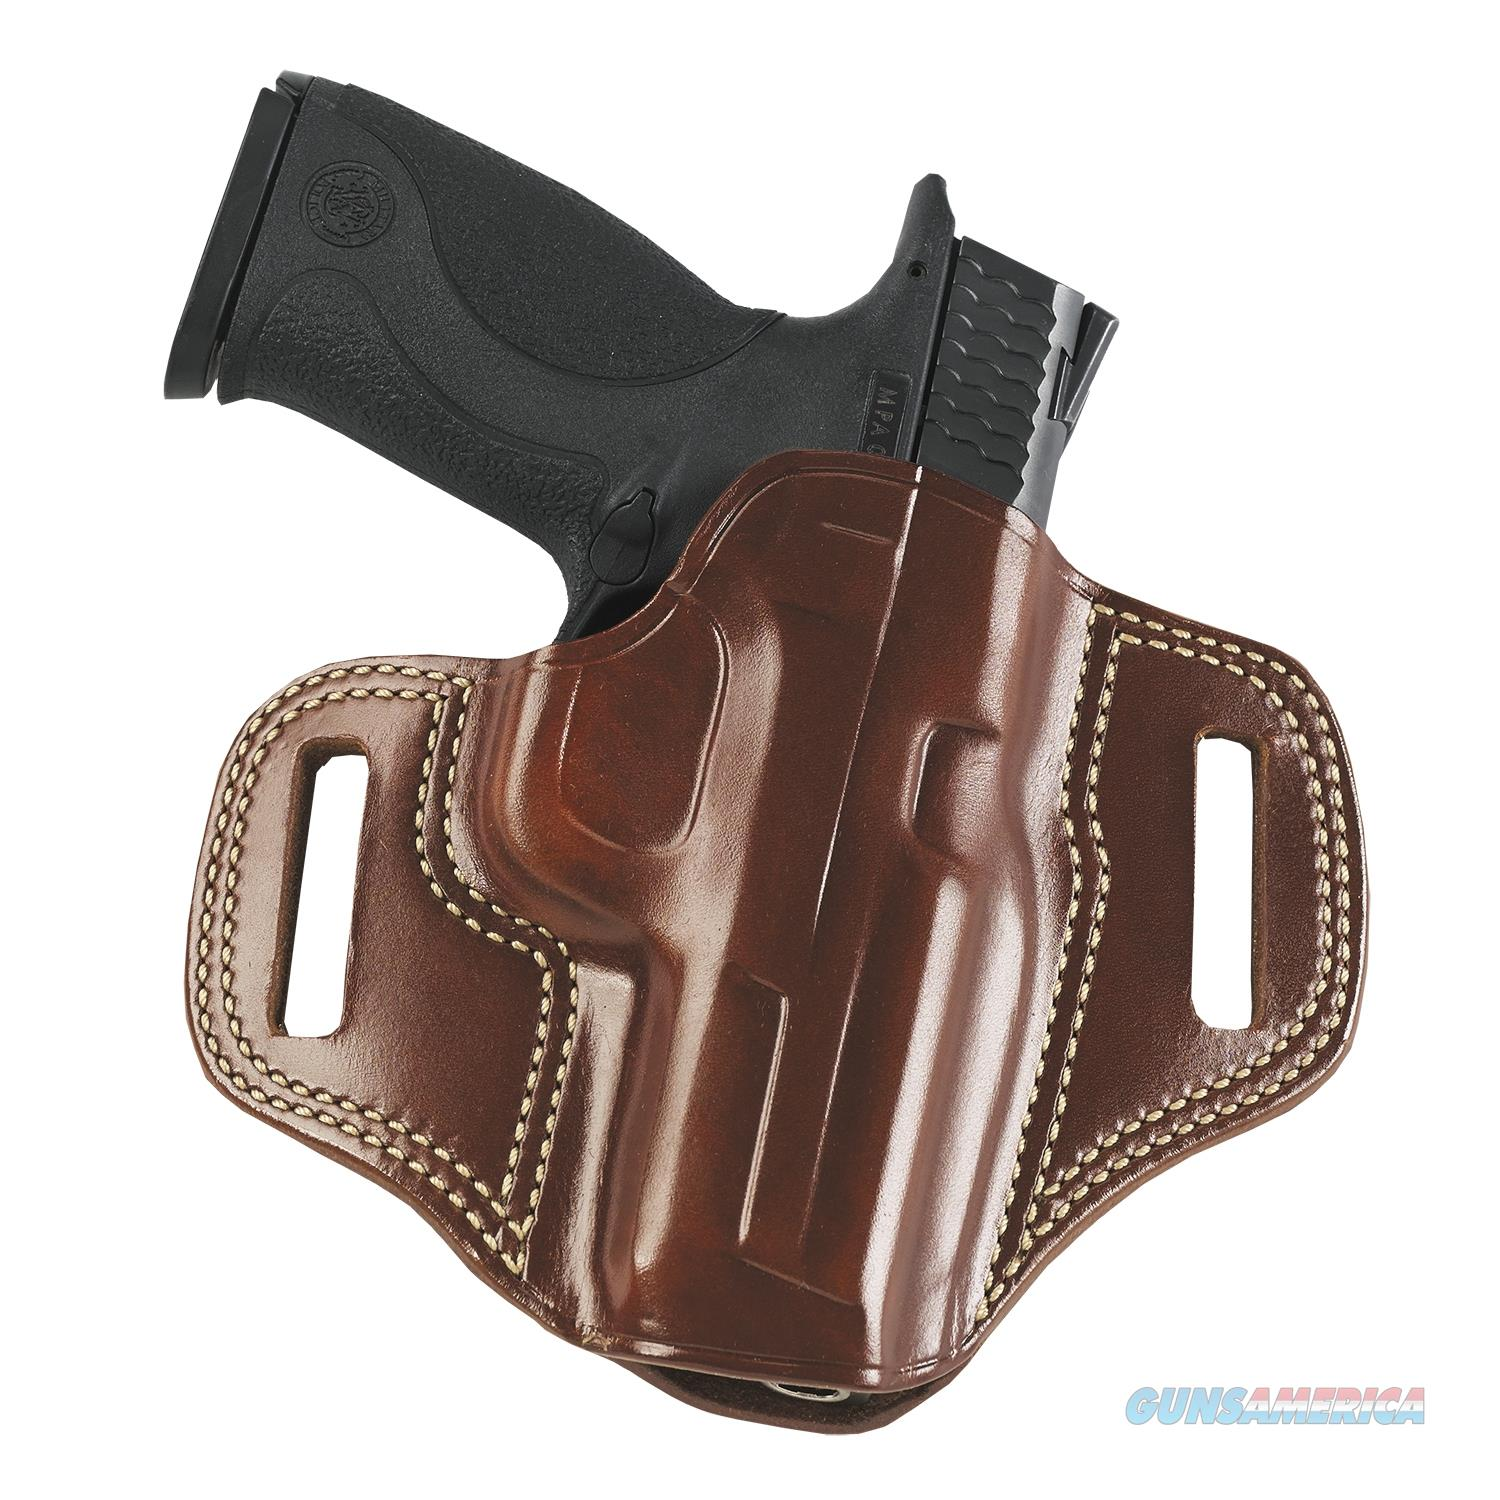 CM226 Combat Master Belt Holster, Tan – Glock 19/23/32/36, Right Draw  Non-Guns > Holsters and Gunleather > Concealed Carry